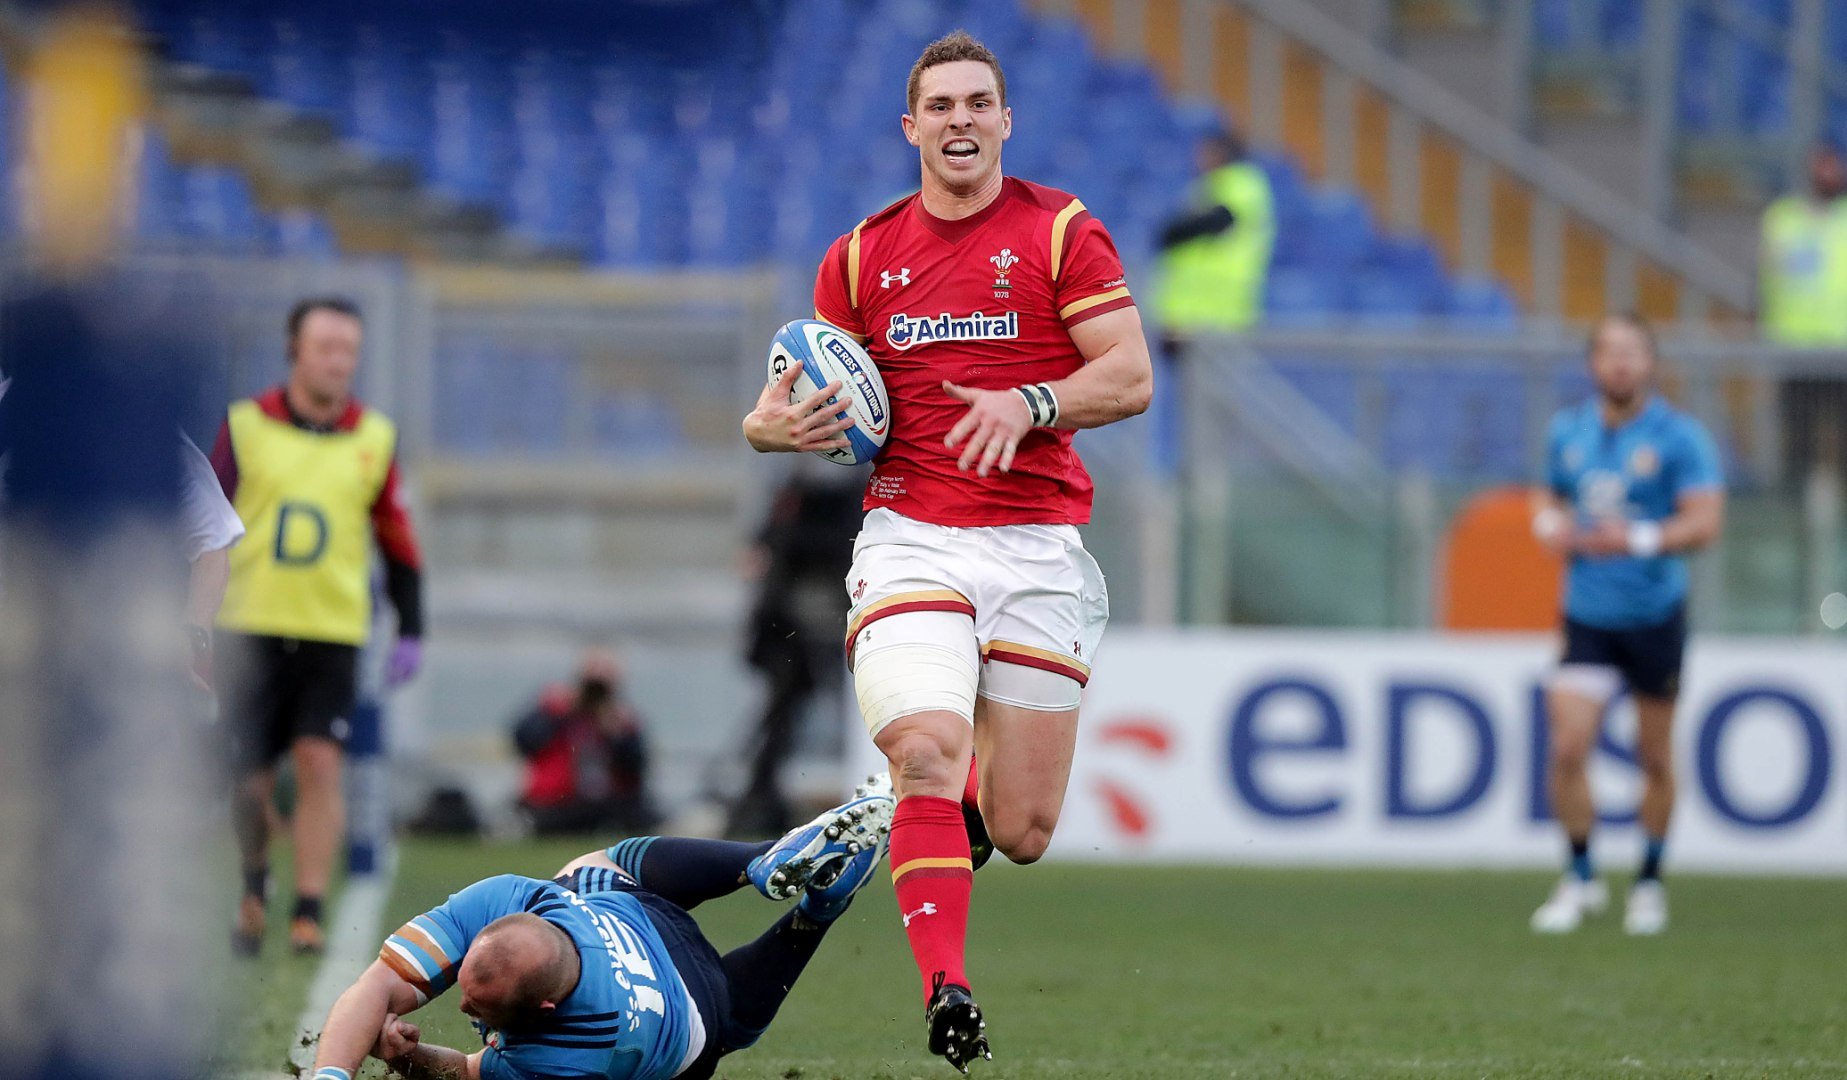 LionsWatch: Jones pleased as Wales pass Italy test